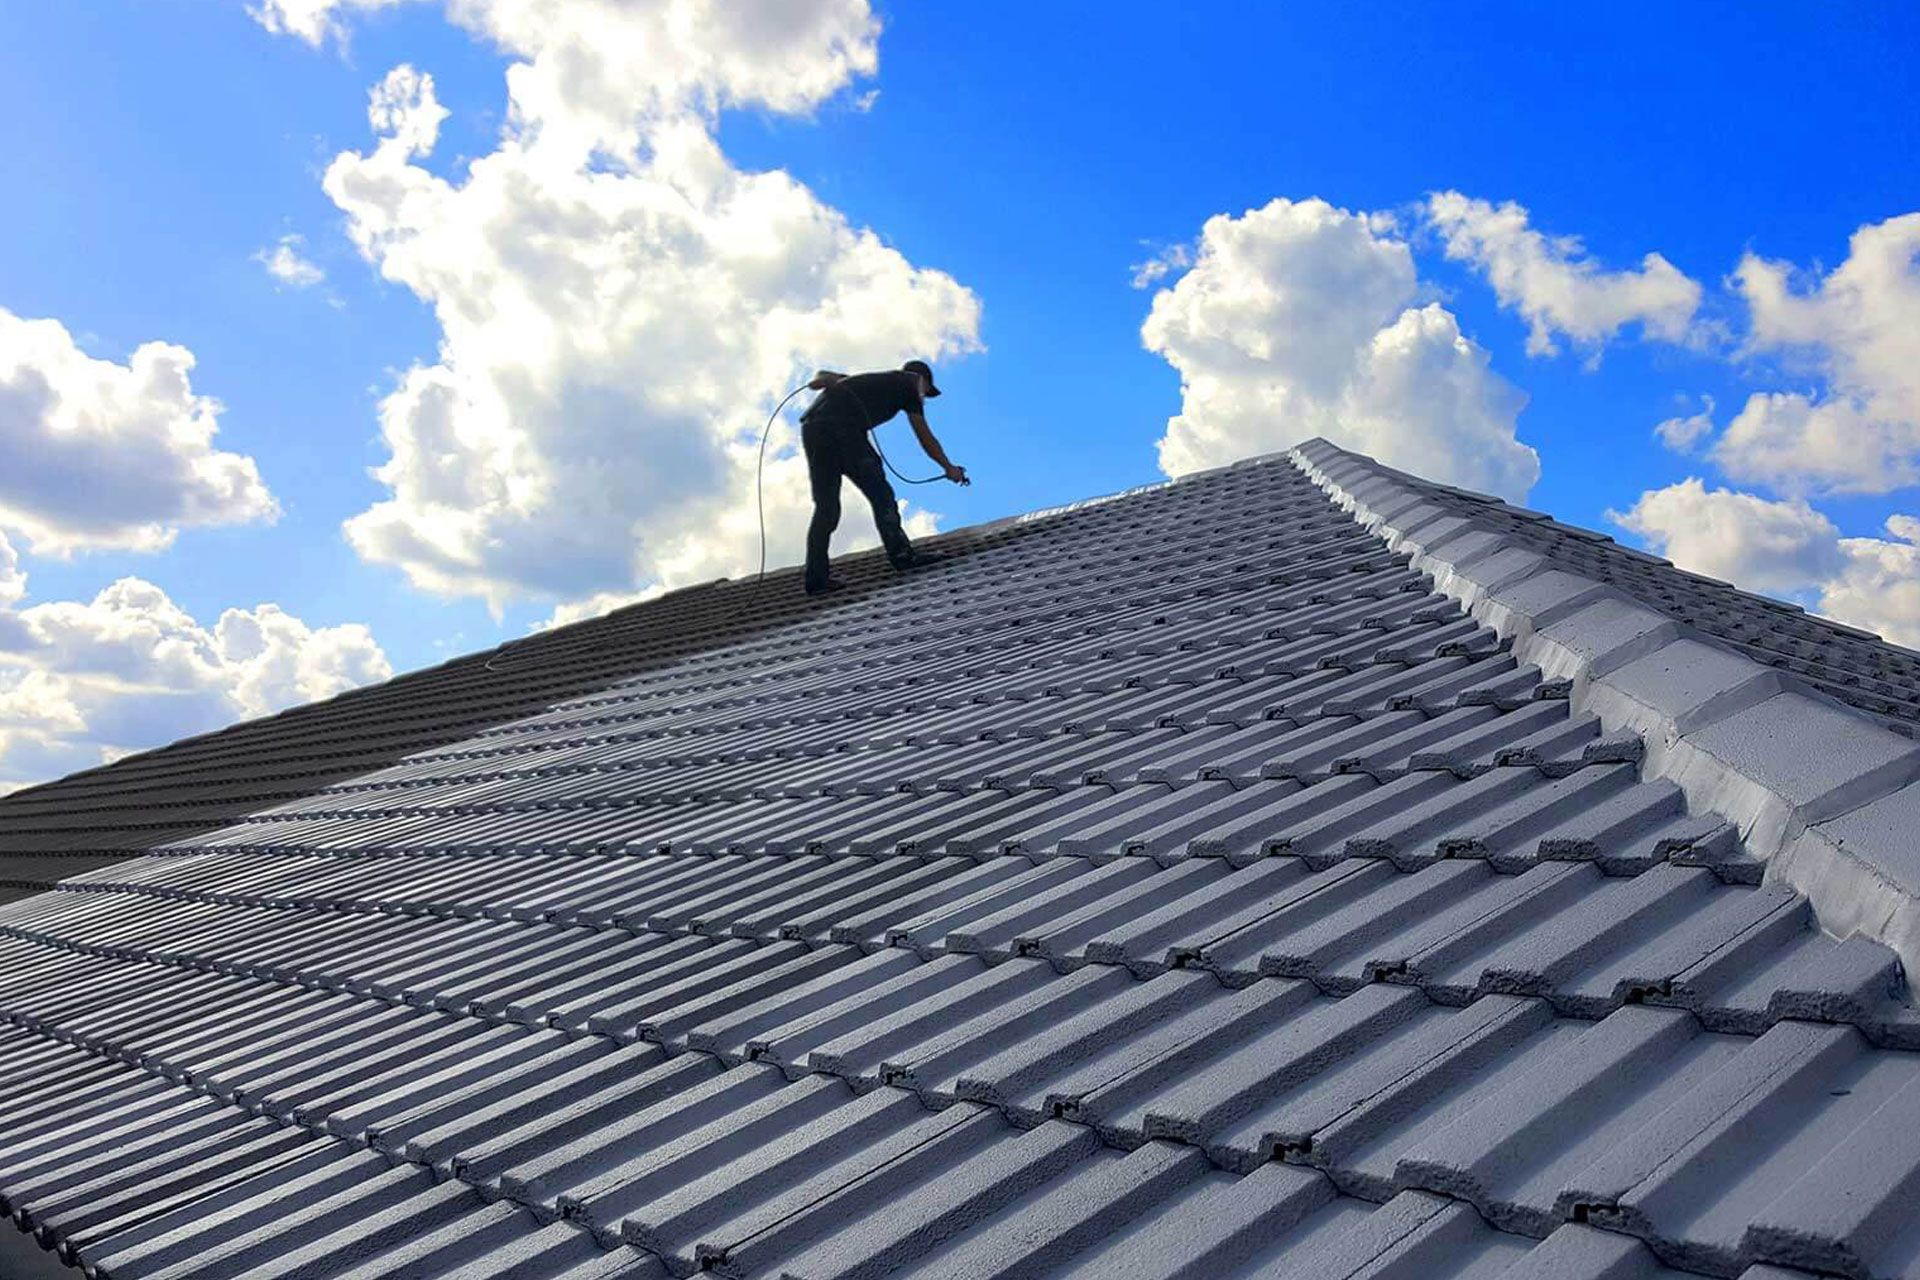 https://nyccommercialroofing.com/wp-content/uploads/2020/05/a3.jpg